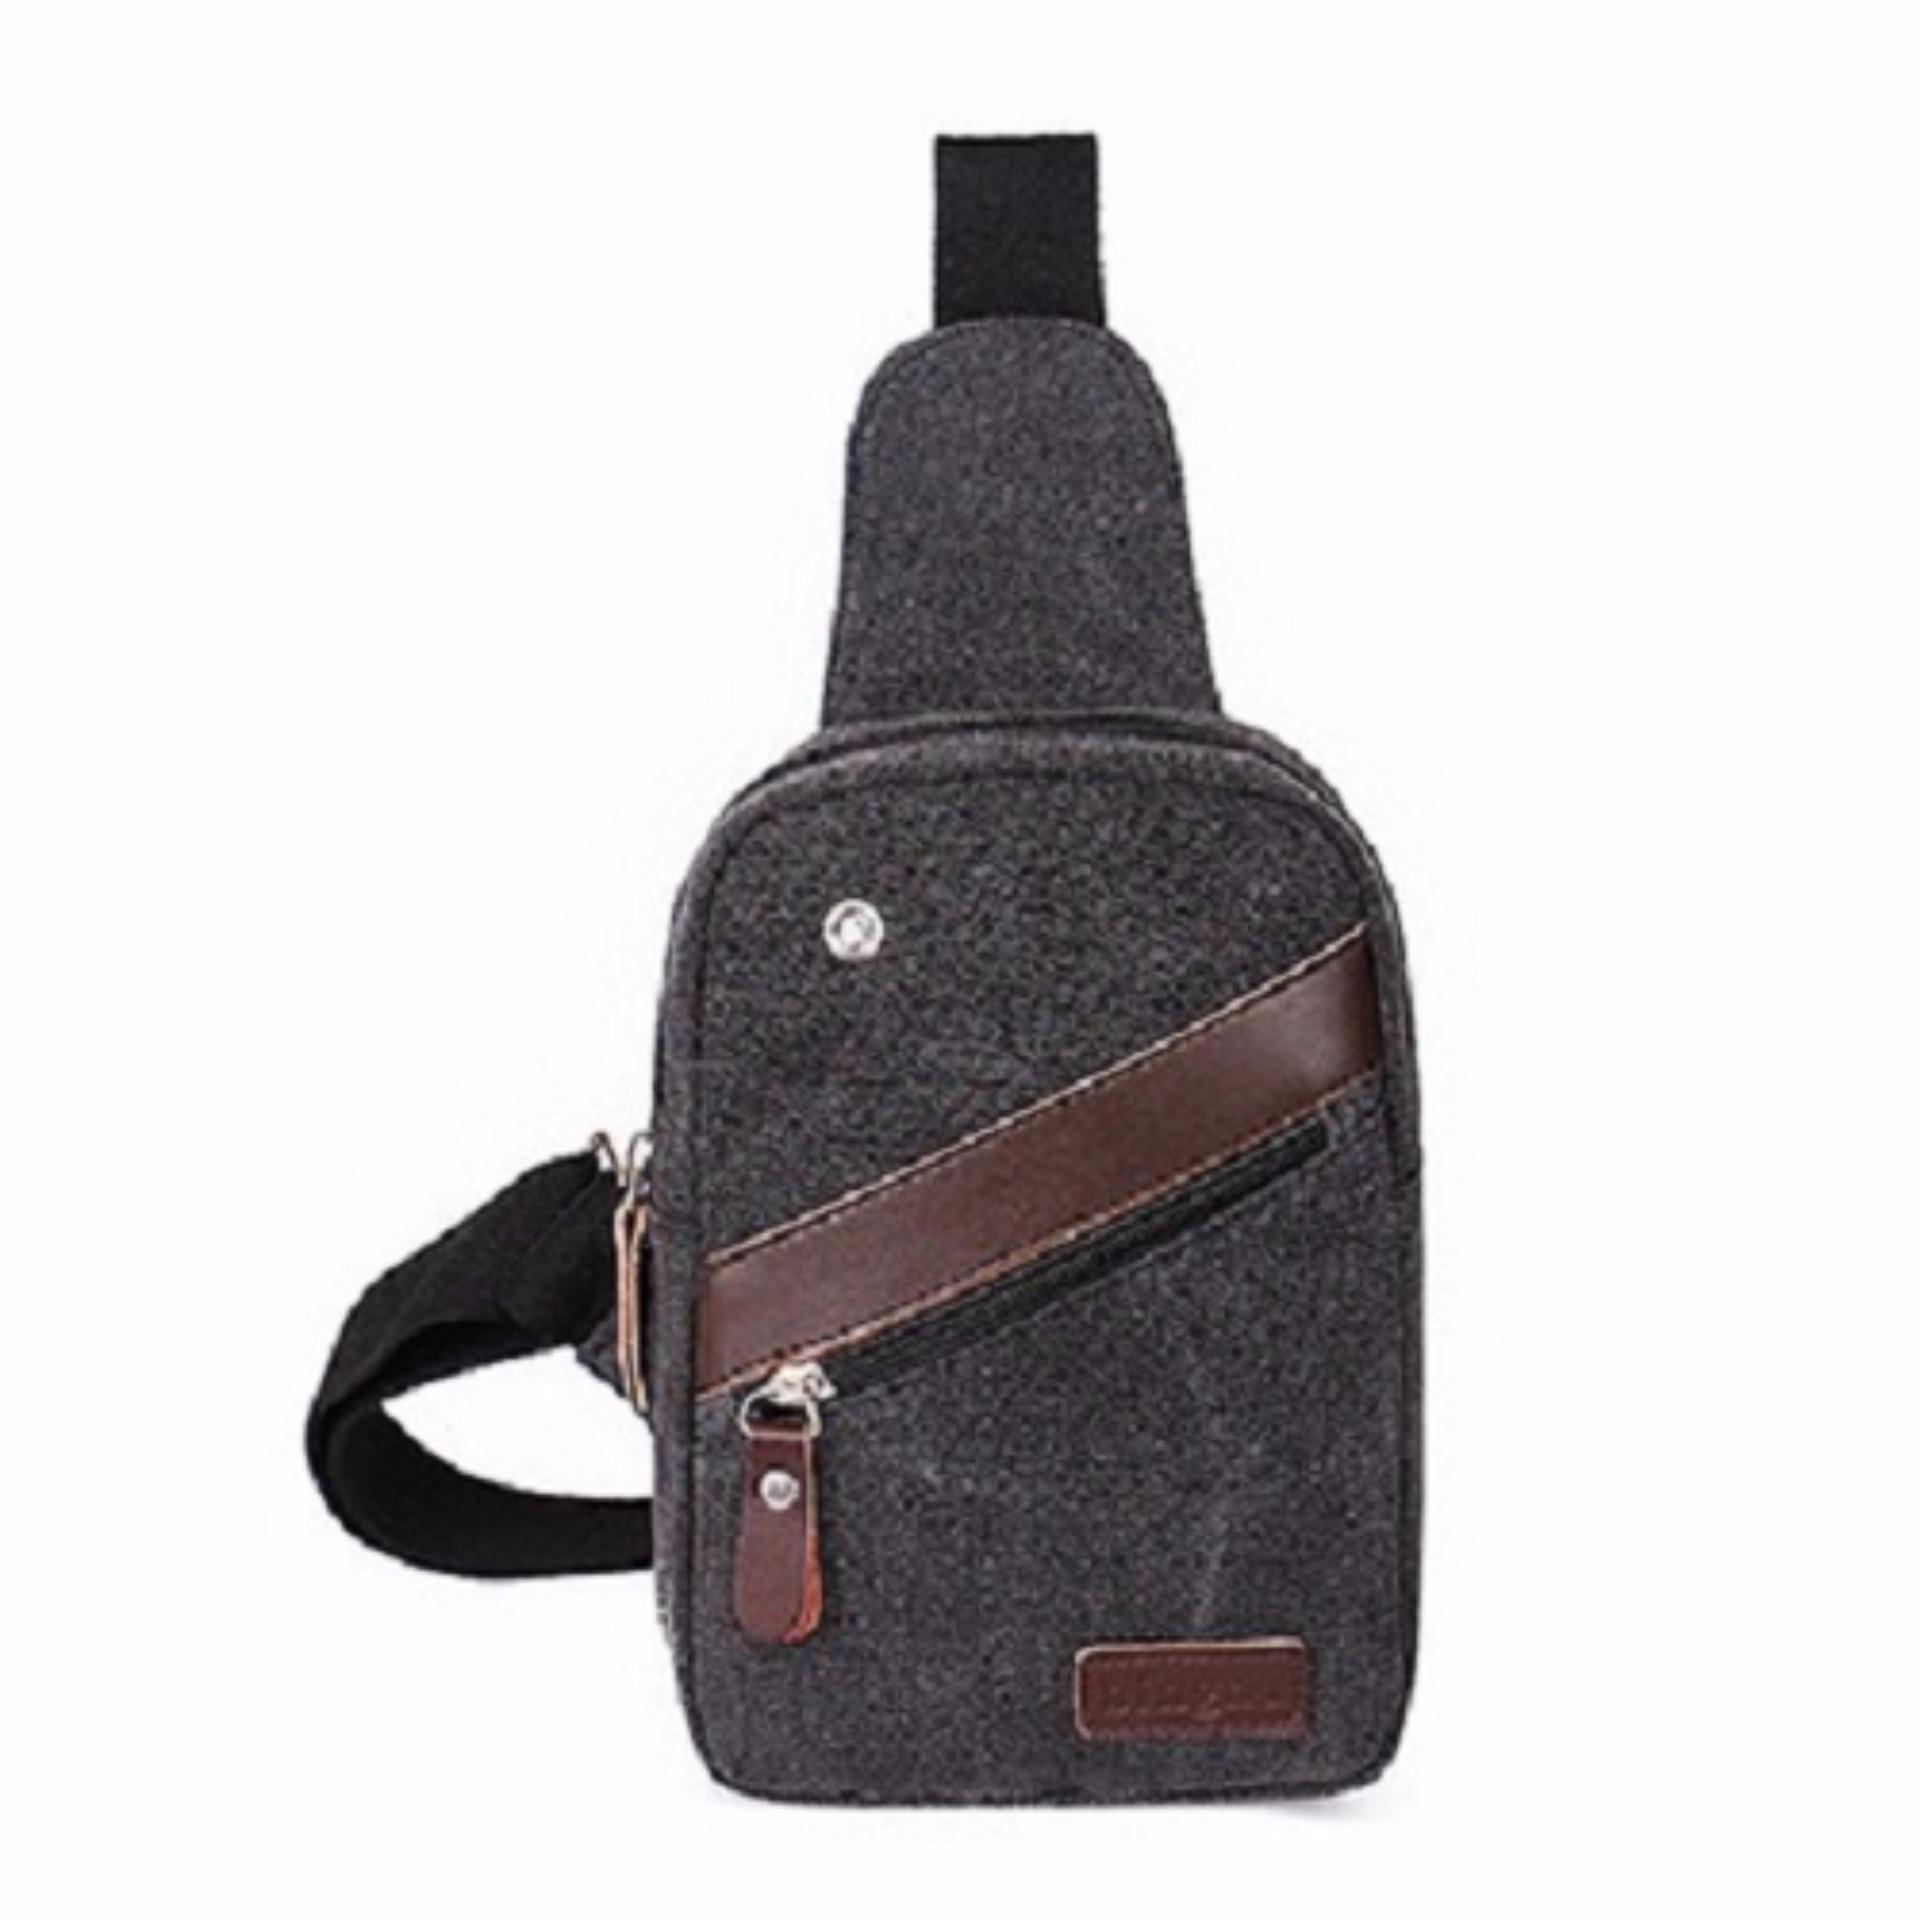 Iklan Generic Tas Selempang Messenger Canvas Import Mini Sling Bag Untuk Tablet Android Ipad Mini Sb Bhx